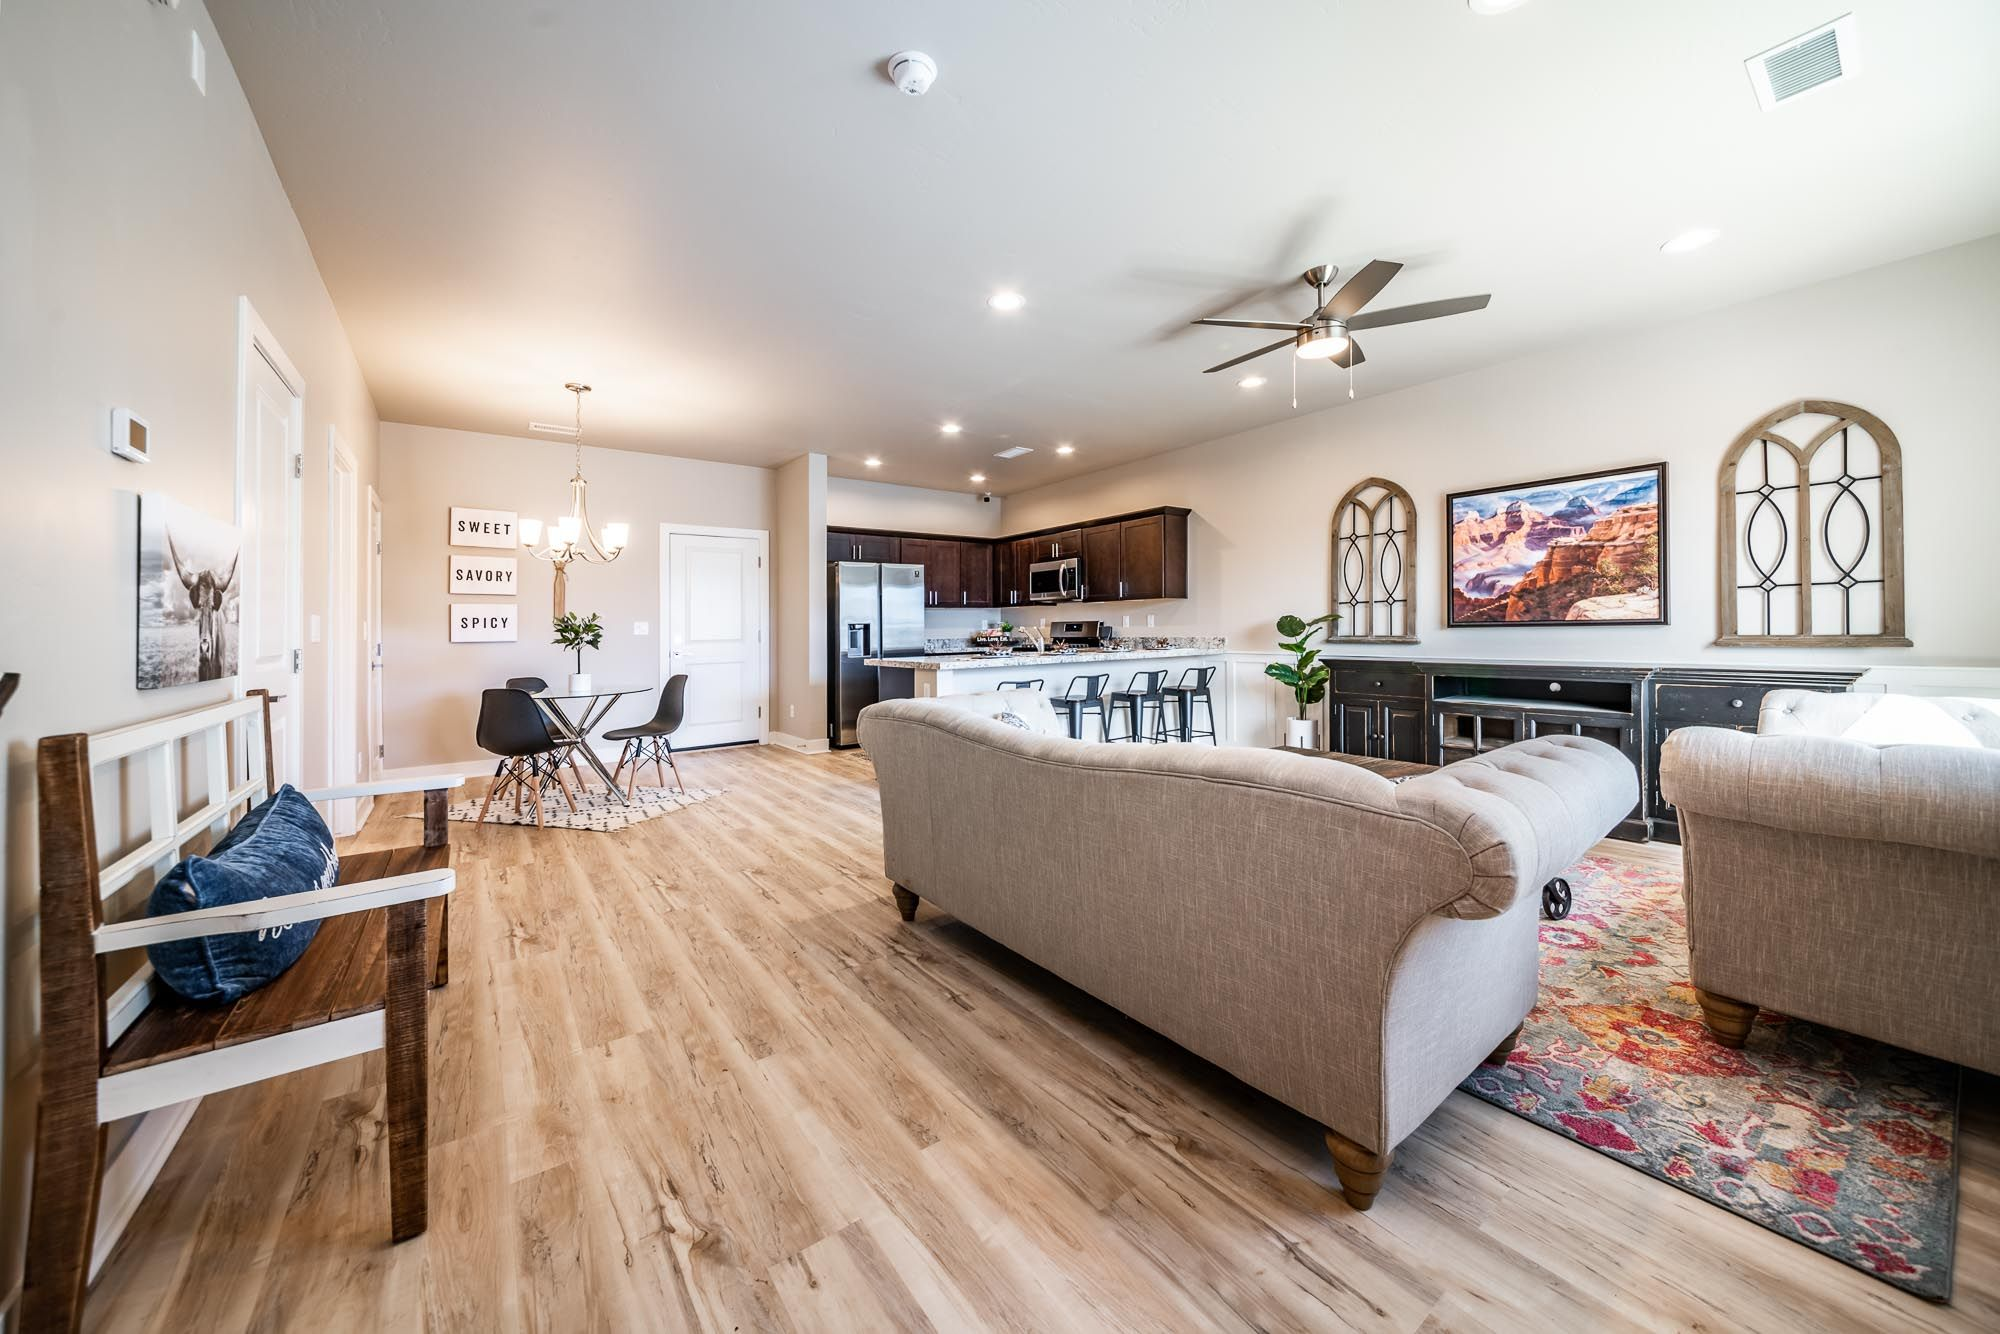 'Shadow Mountain Village' by Solid Homes in Flagstaff